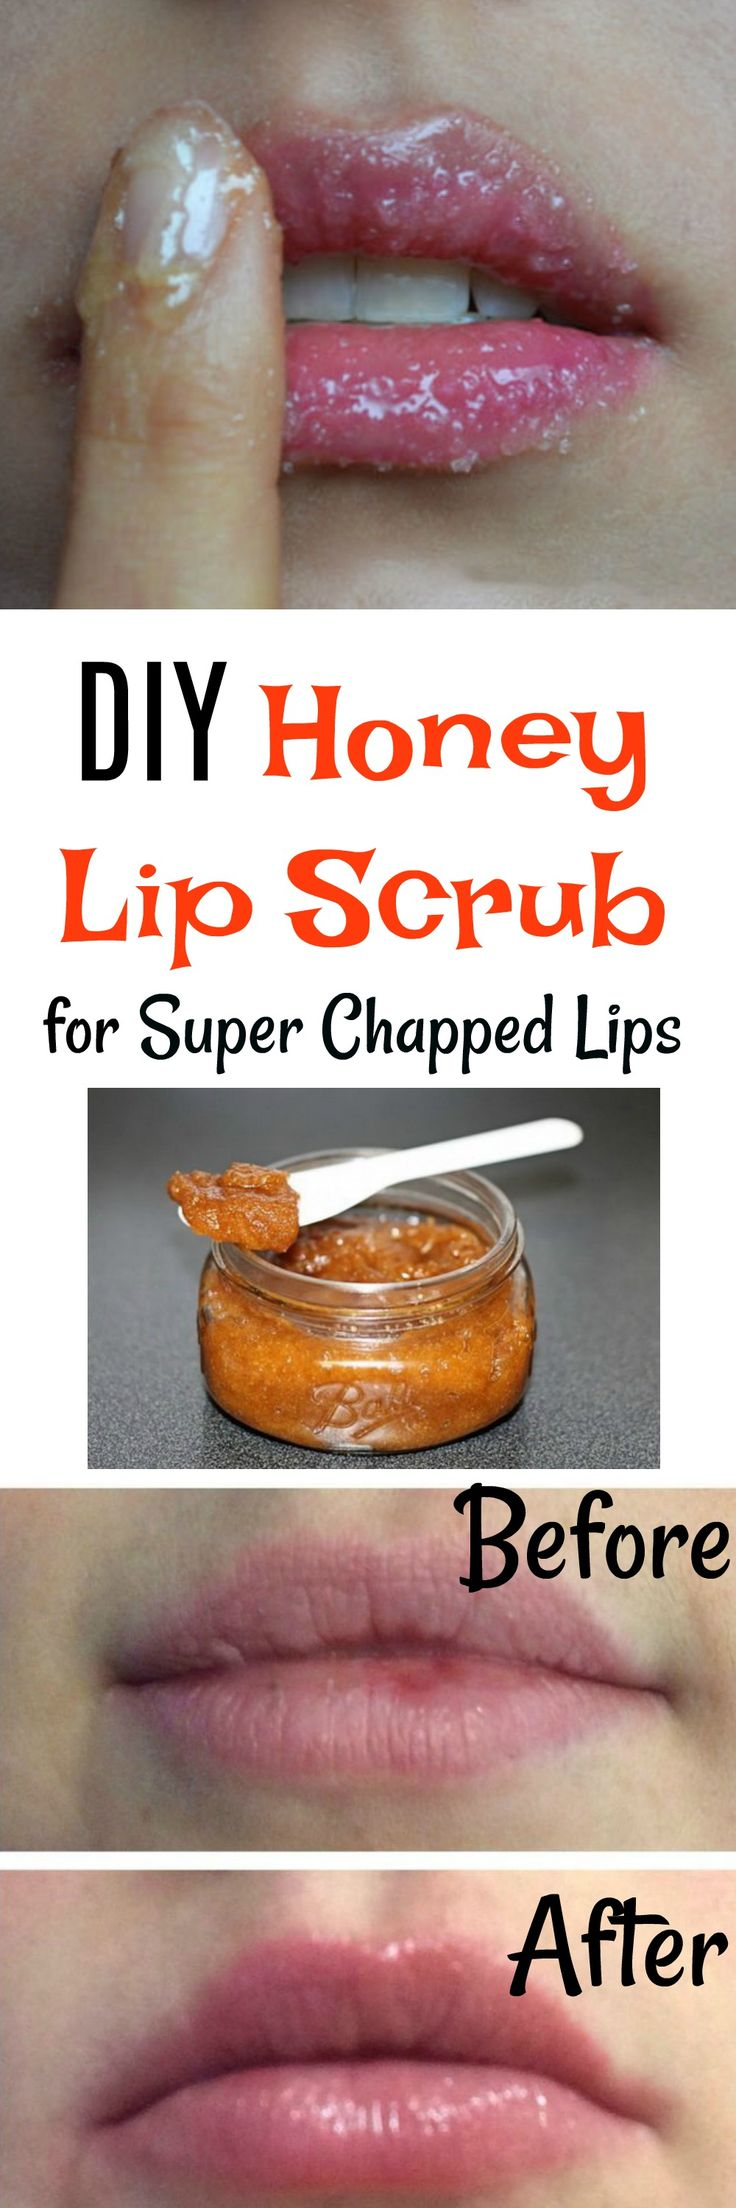 1 tbsp brown sugar  a dash of honey  1 tsp coconut oil  a few drops of vanilla essence via @styletips1o1